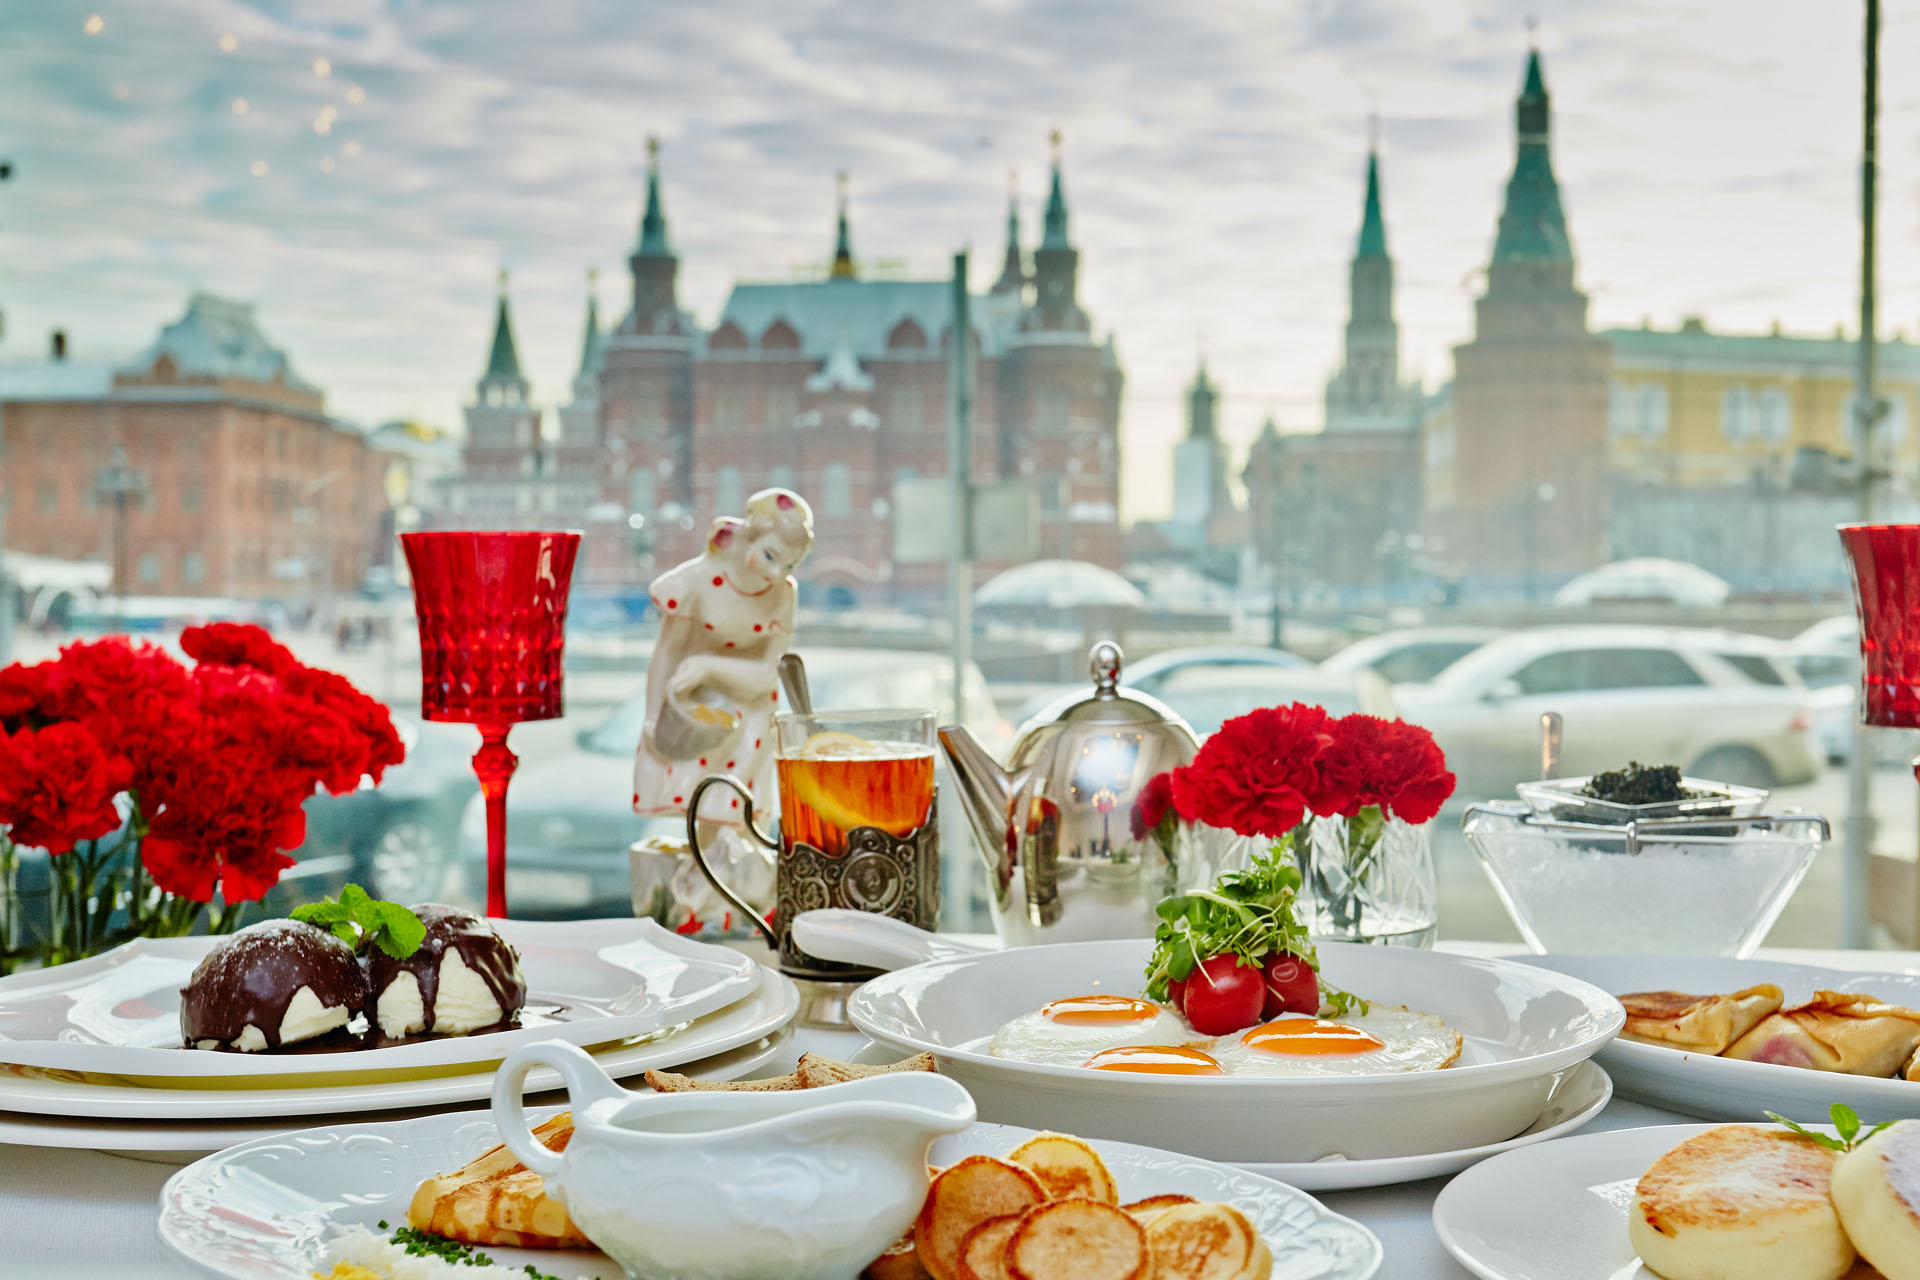 Breakfast in Dr.Zhivago